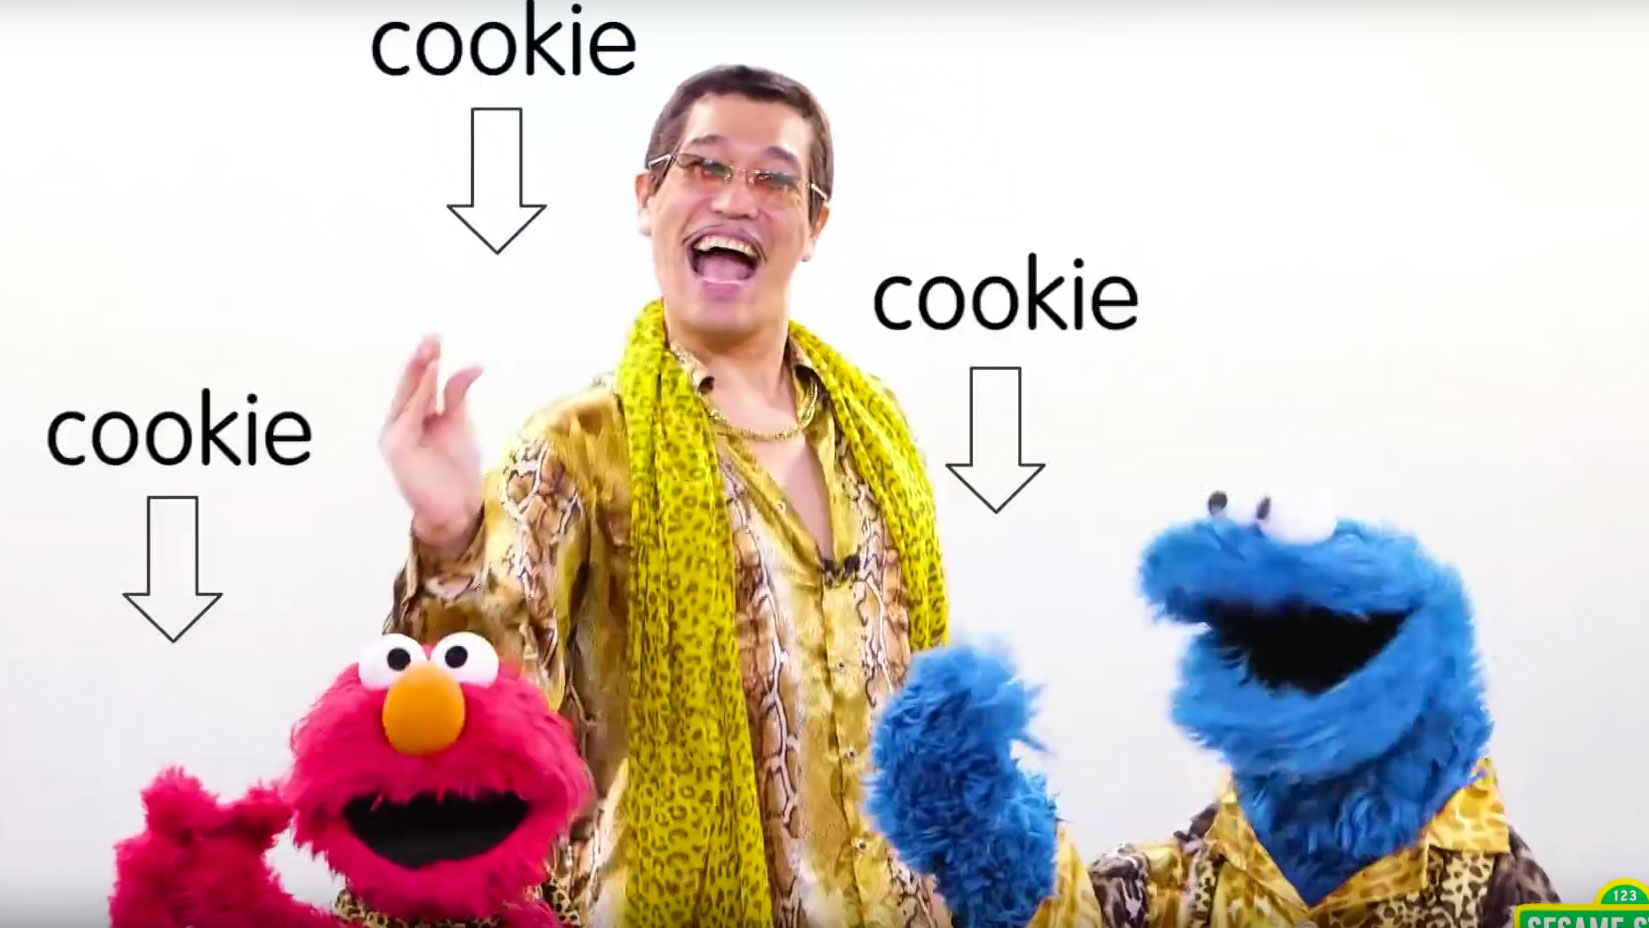 Pen-Pineapple-Apple-Pen Sesame Street